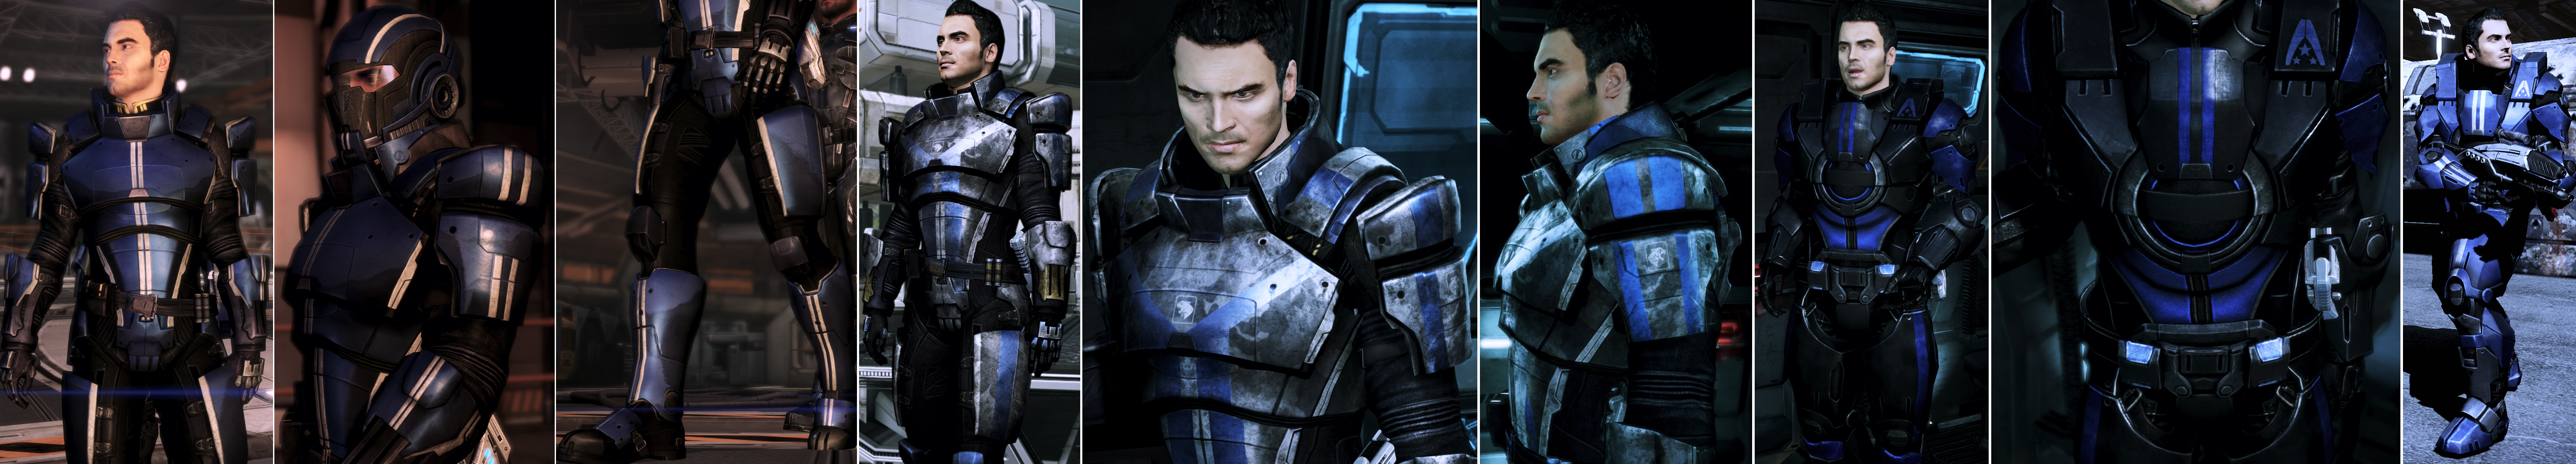 kaidan_collagenaog5.jpg